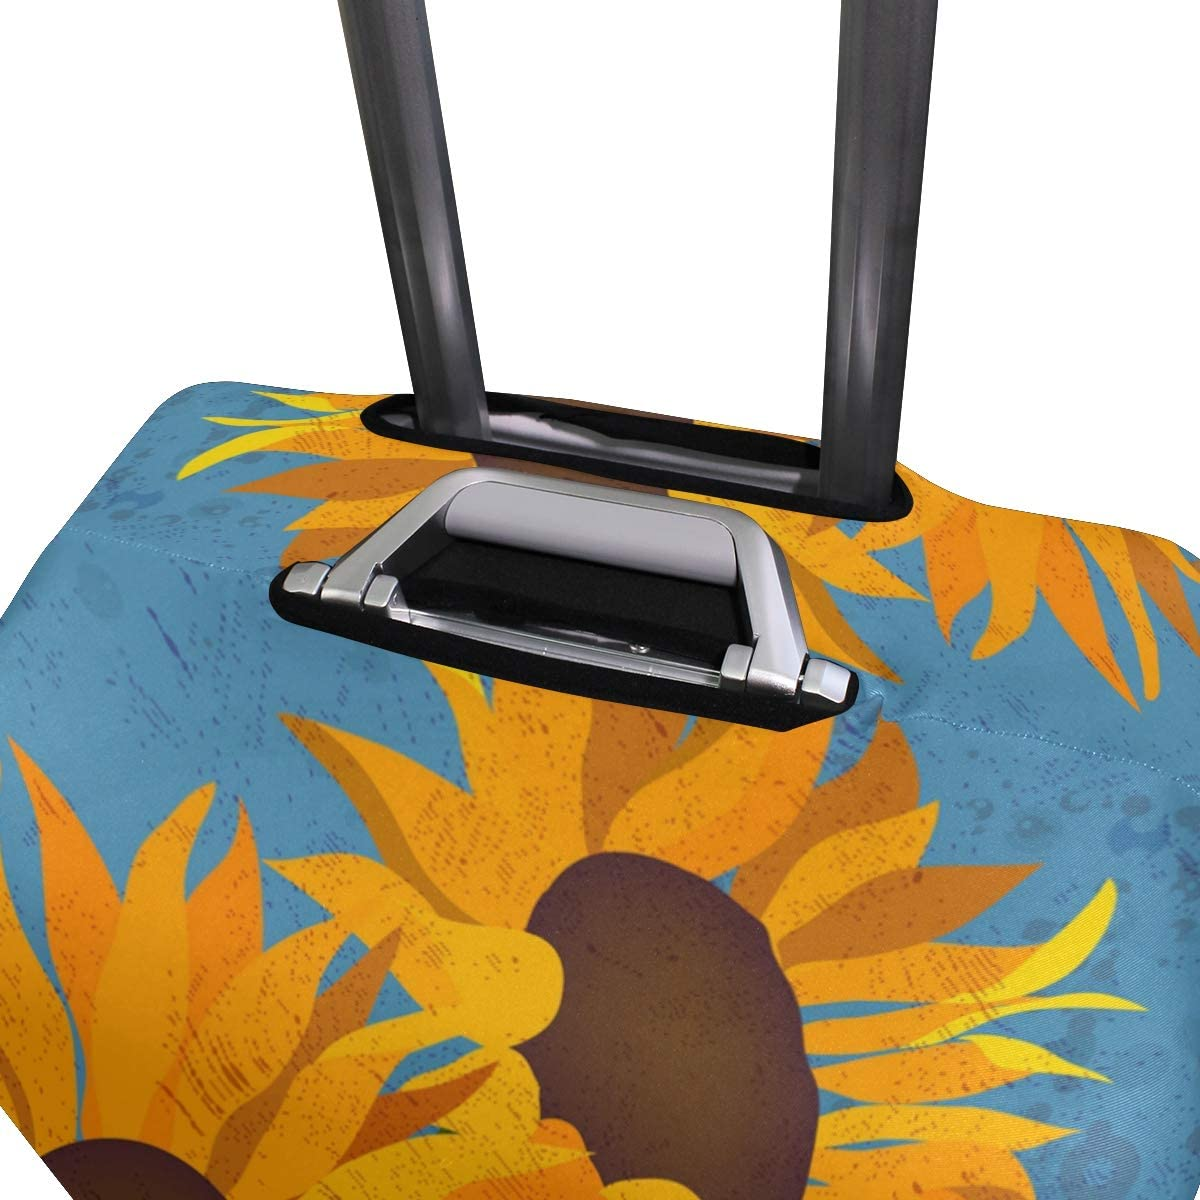 FOLPPLY Retro Sunflower Luggage Cover Baggage Suitcase Travel Protector Fit for 18-32 Inch